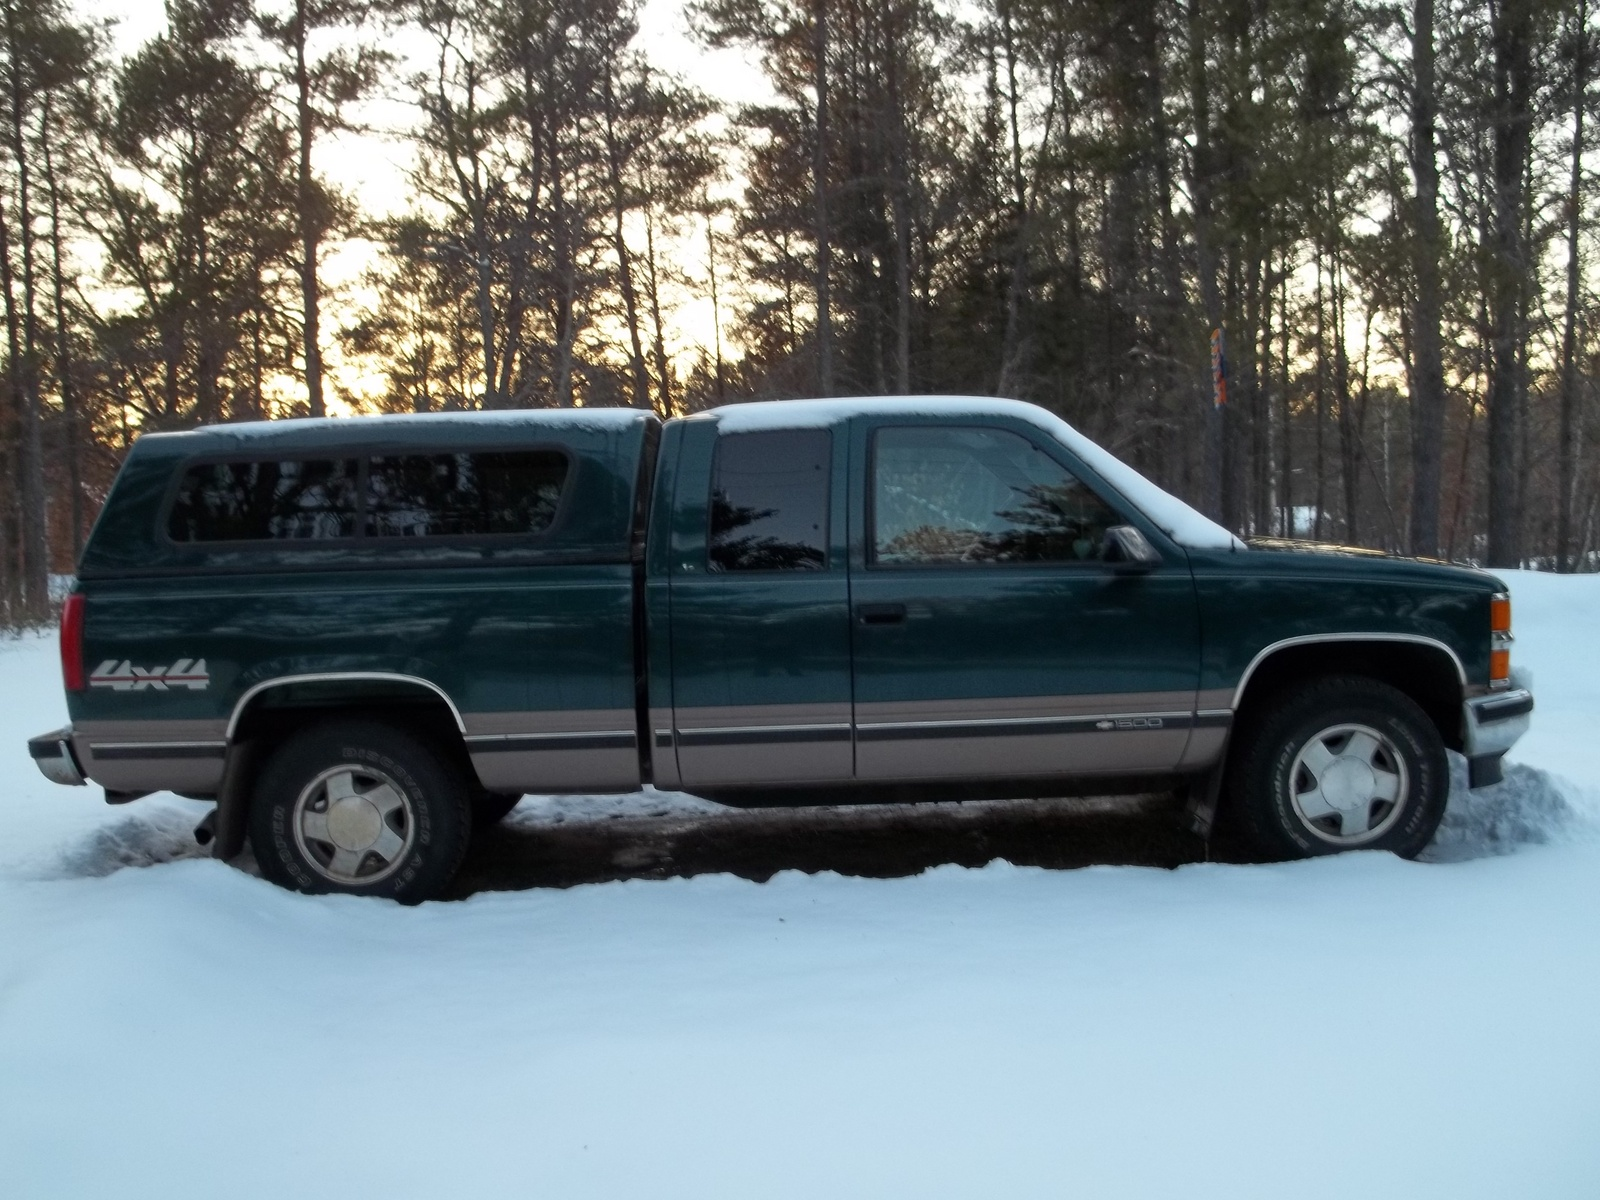 lt 4wd extended cab sb picture 1999 chevrolet silverado extended cab